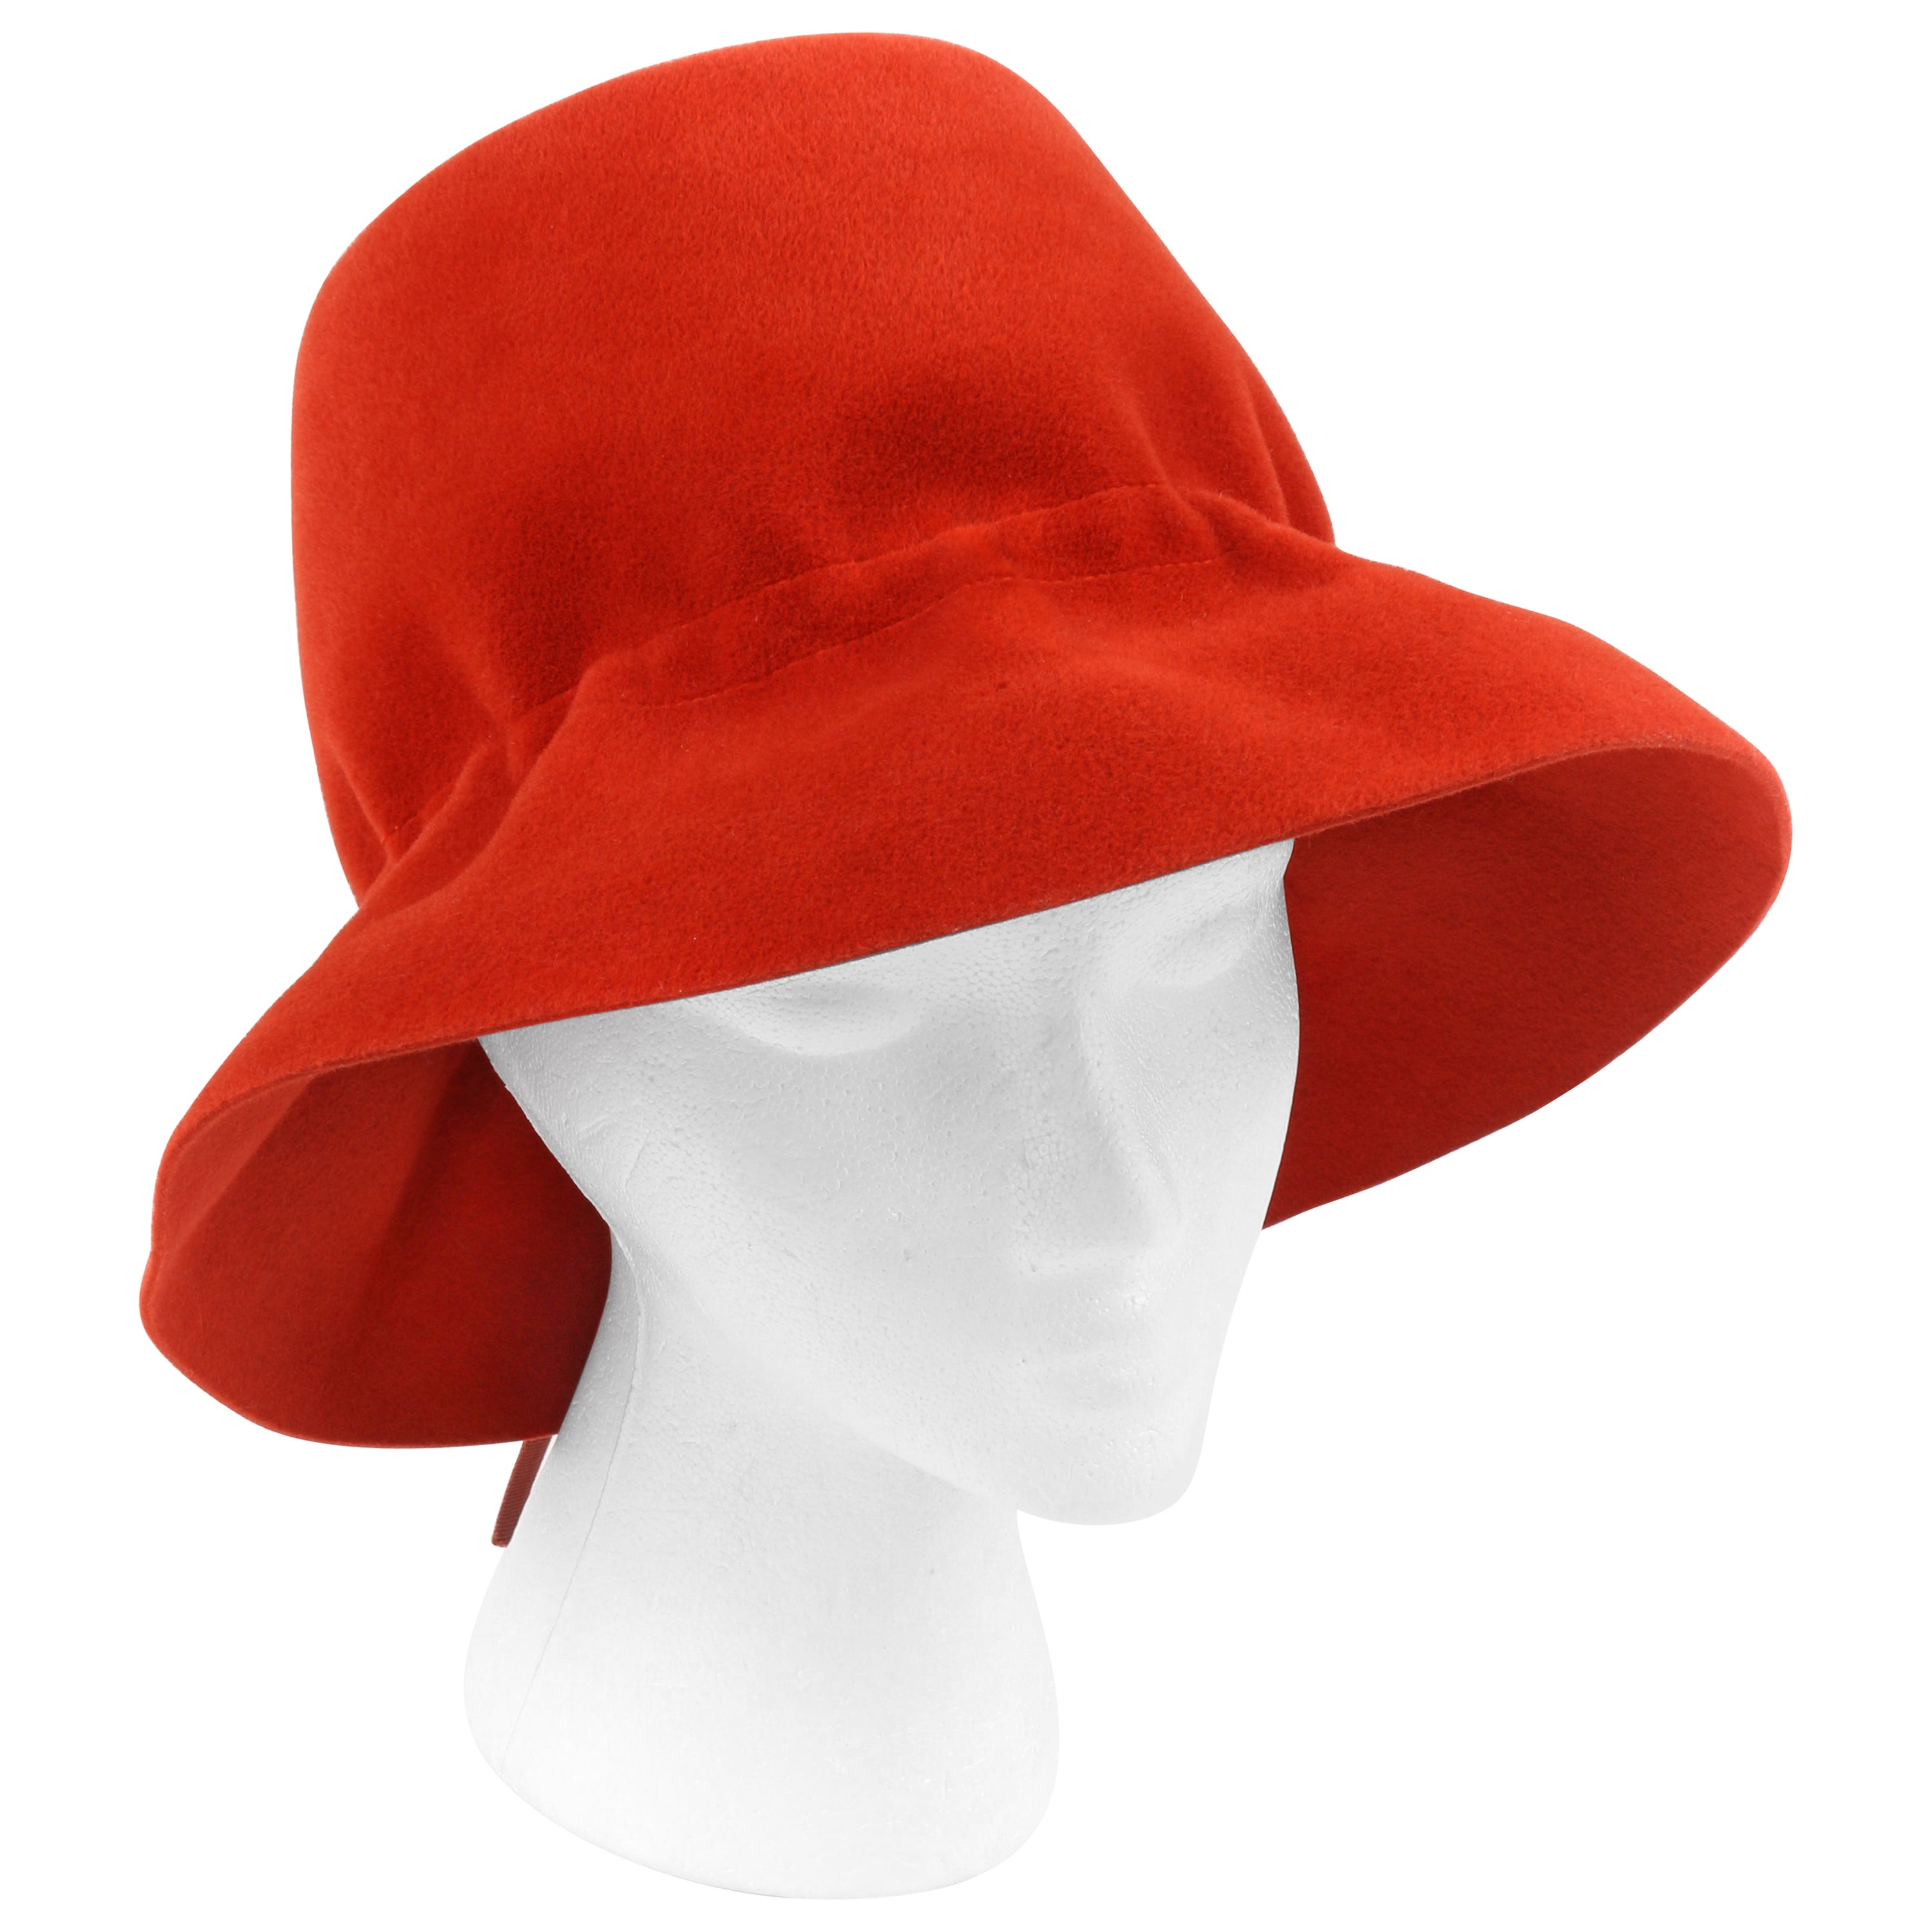 YVES SAINT LAURENT c.1960's YSL Cayenne Red Felted Fur Structured Bucket Hat